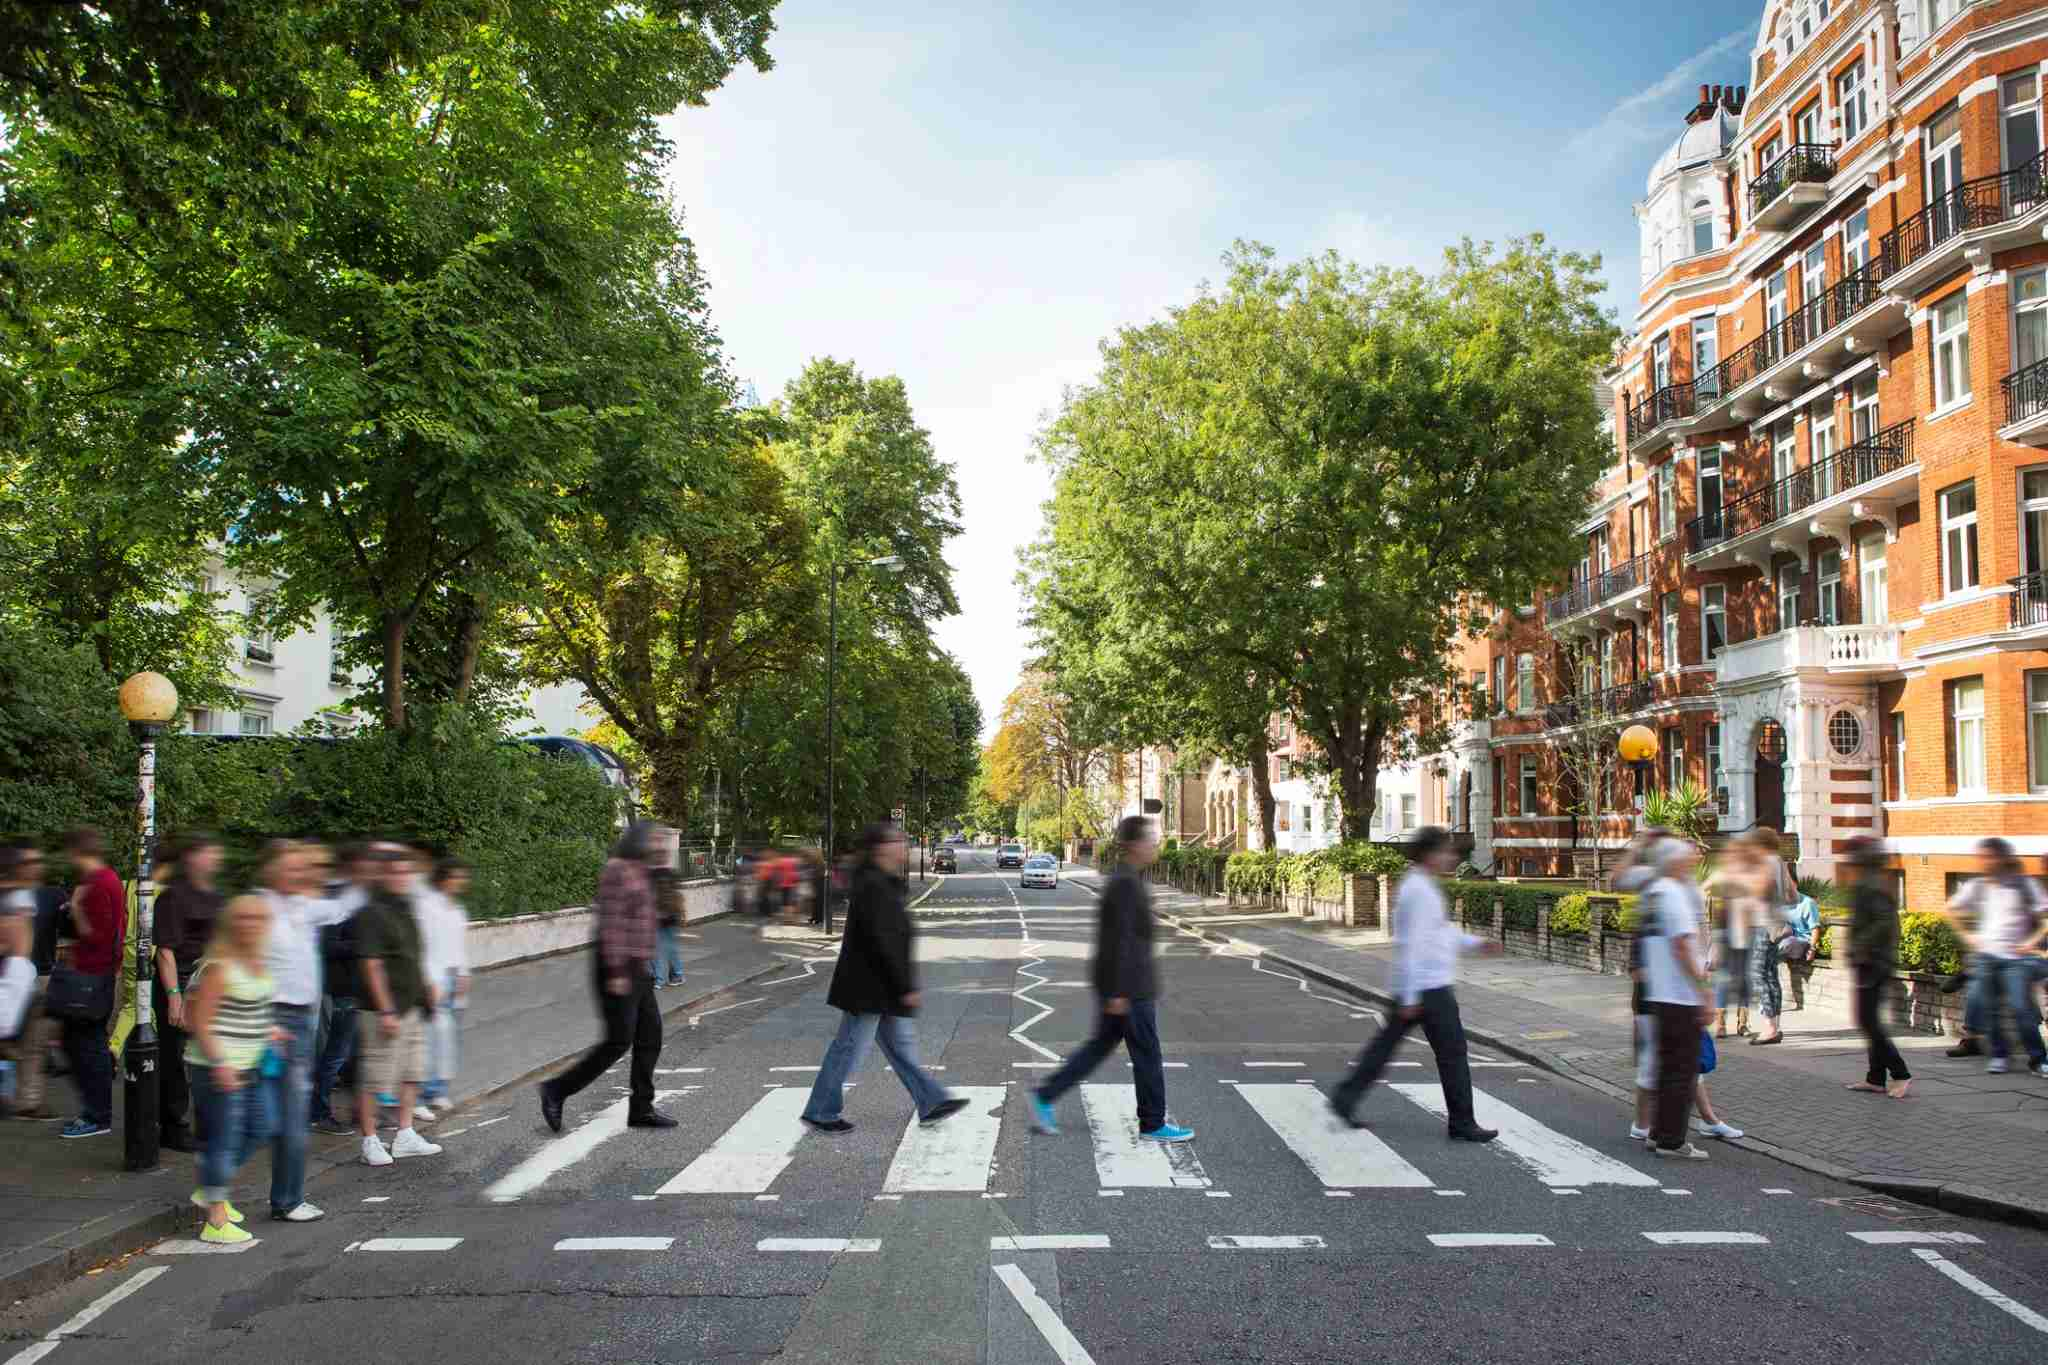 Have you walked across iconic Abbey Road in London yet? (Photo by Richard Boll / Getty Images)